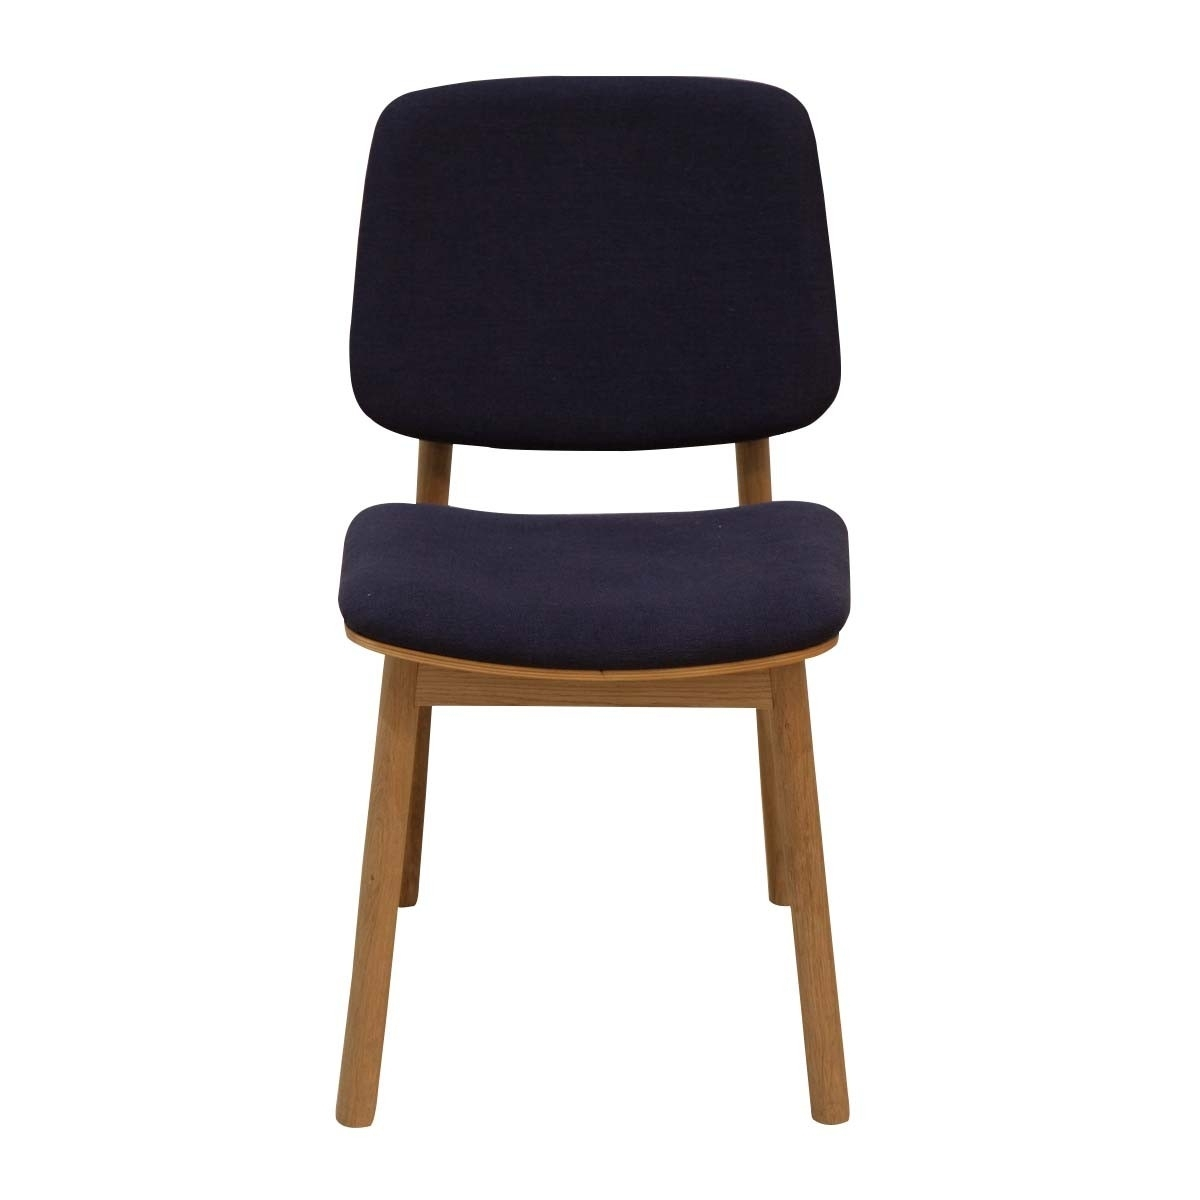 Fashionable Life Interiors – Whywood Dining Chair (Oak, Charcoal) – Modern Pertaining To Charcoal Dining Chairs (#10 of 20)